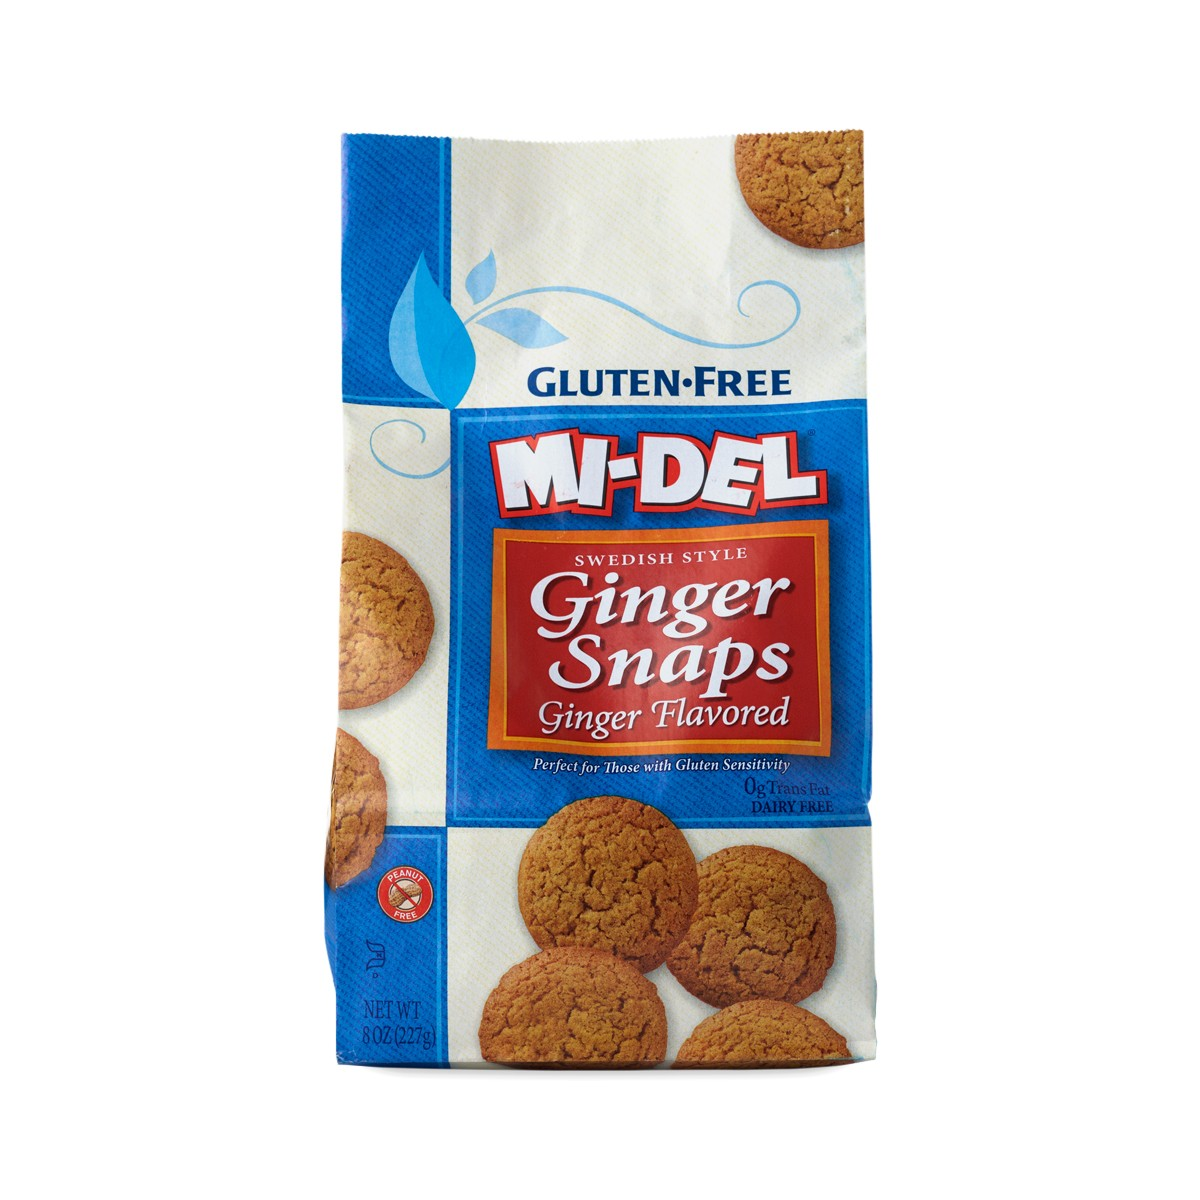 Are ginger snaps gluten free